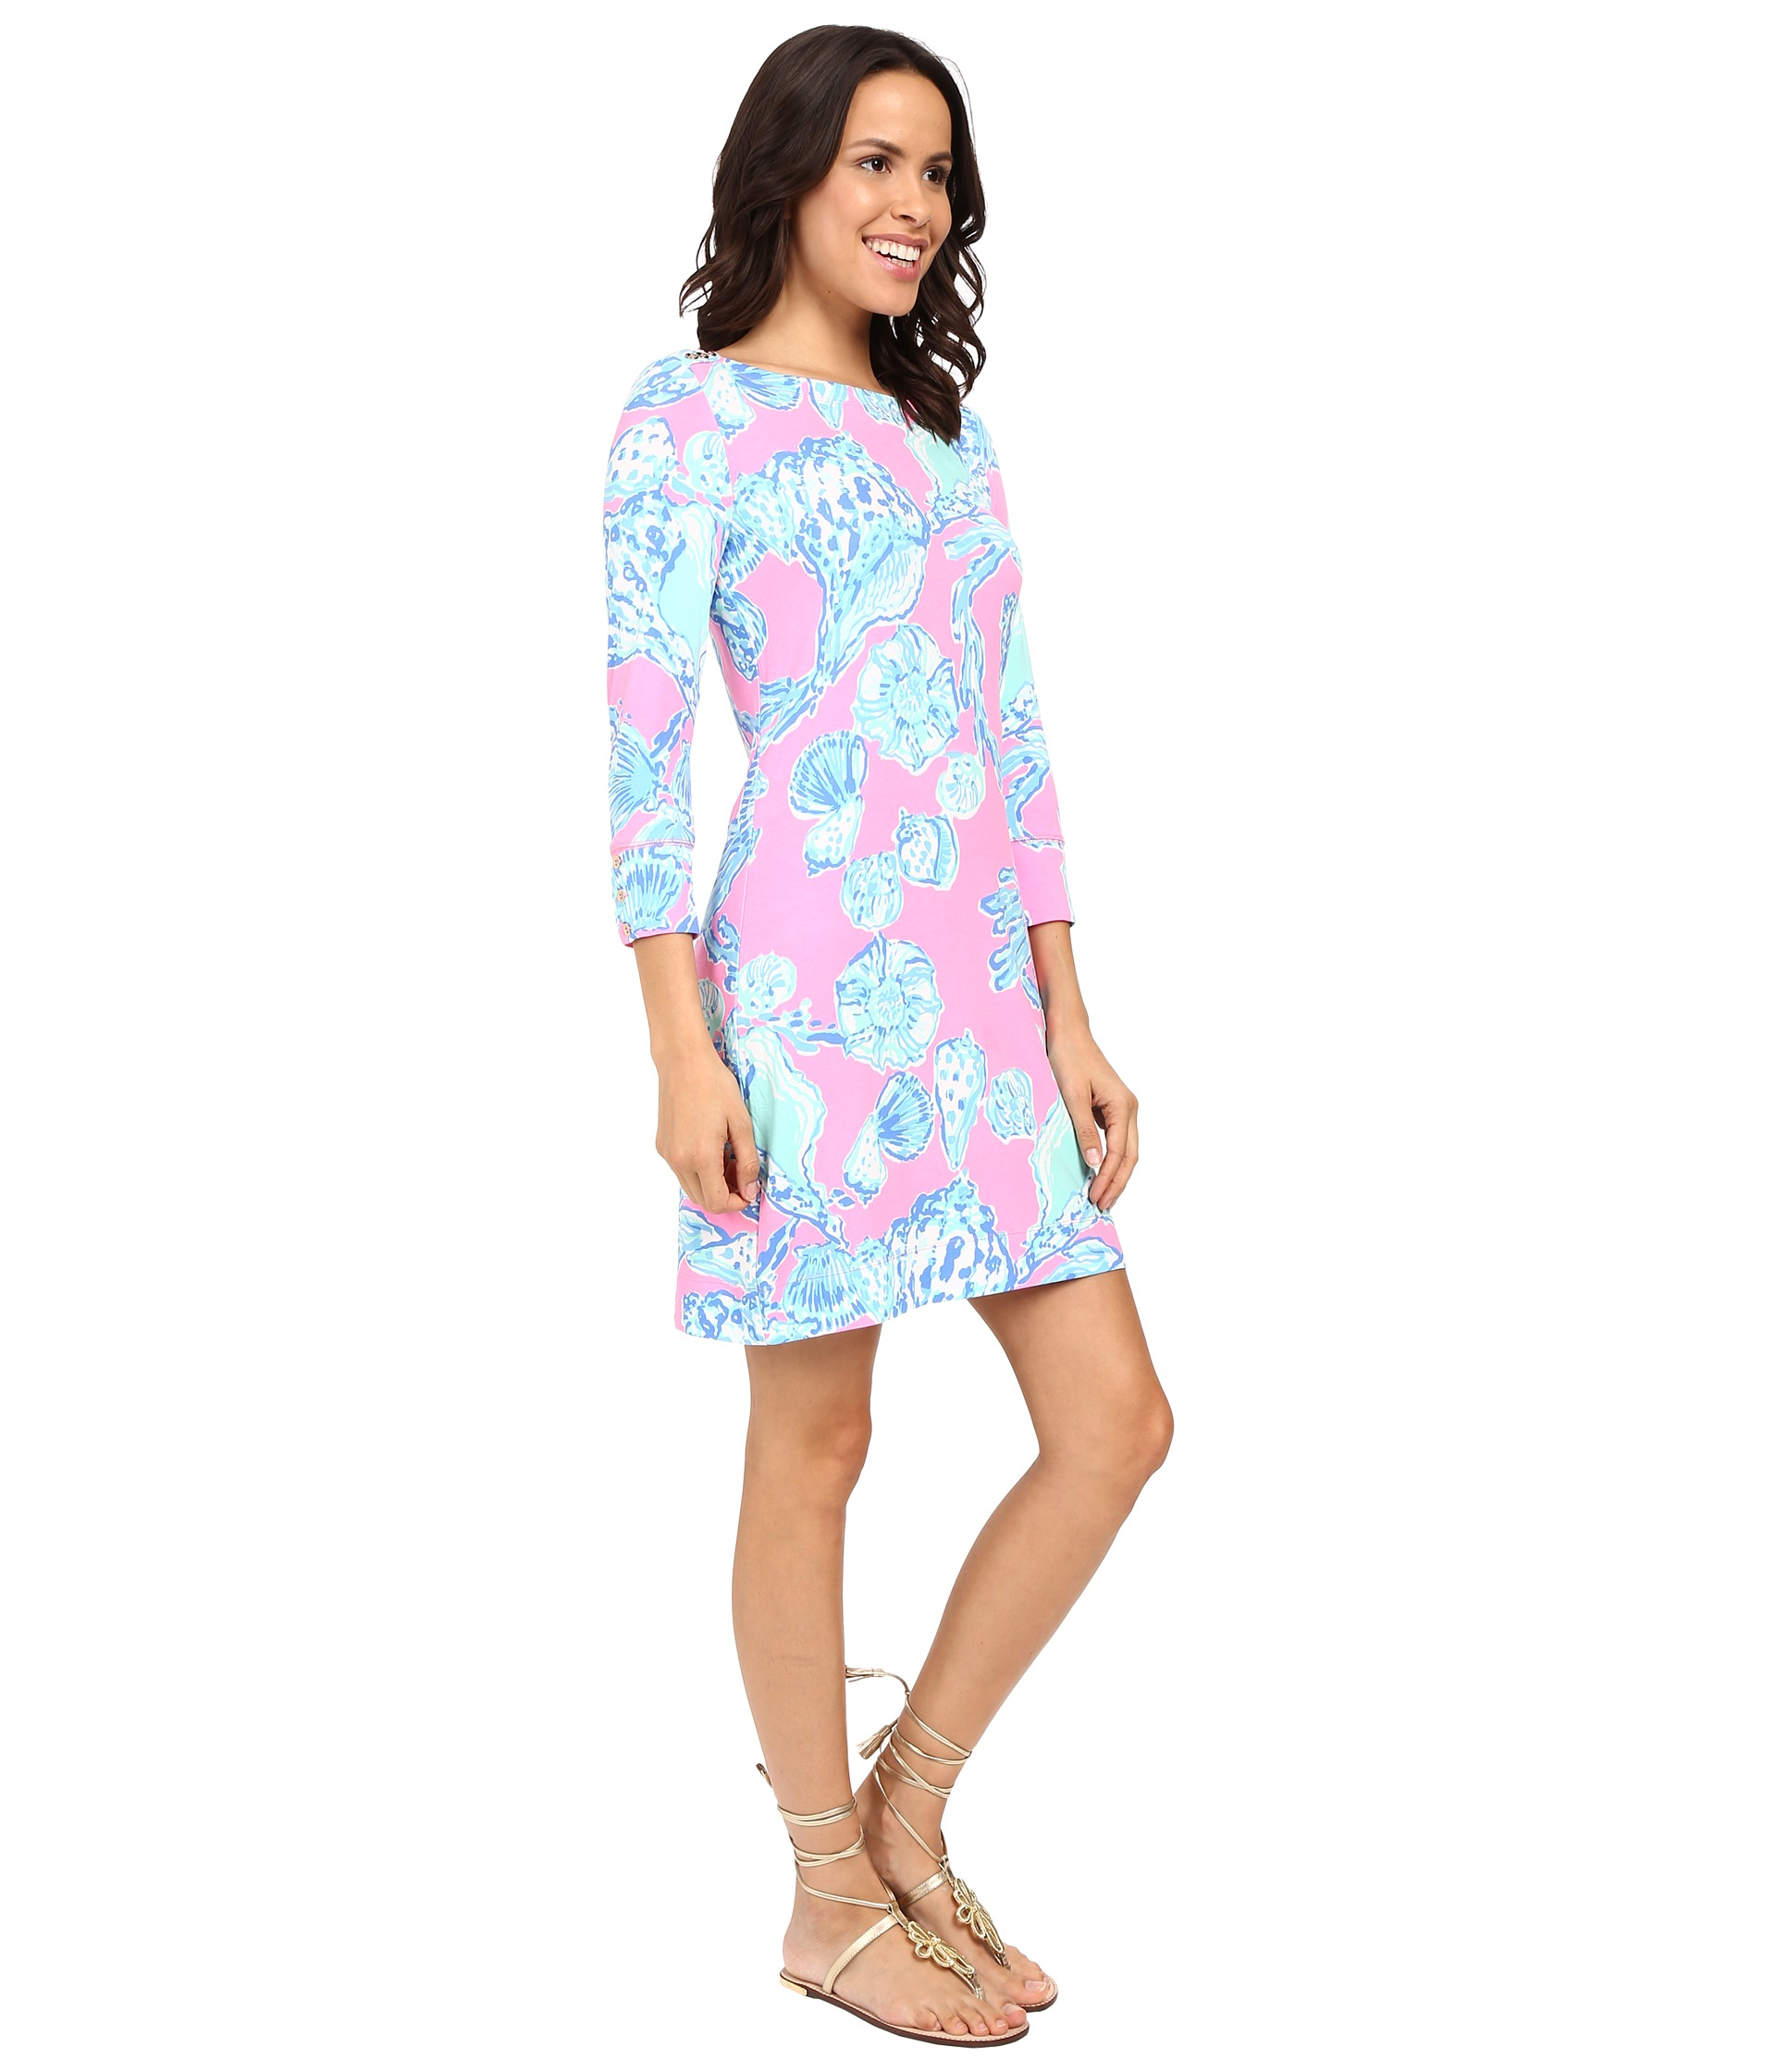 Sophie Dress: Lilly Pulitzer Upf 50+ Sophie Dress In Blue